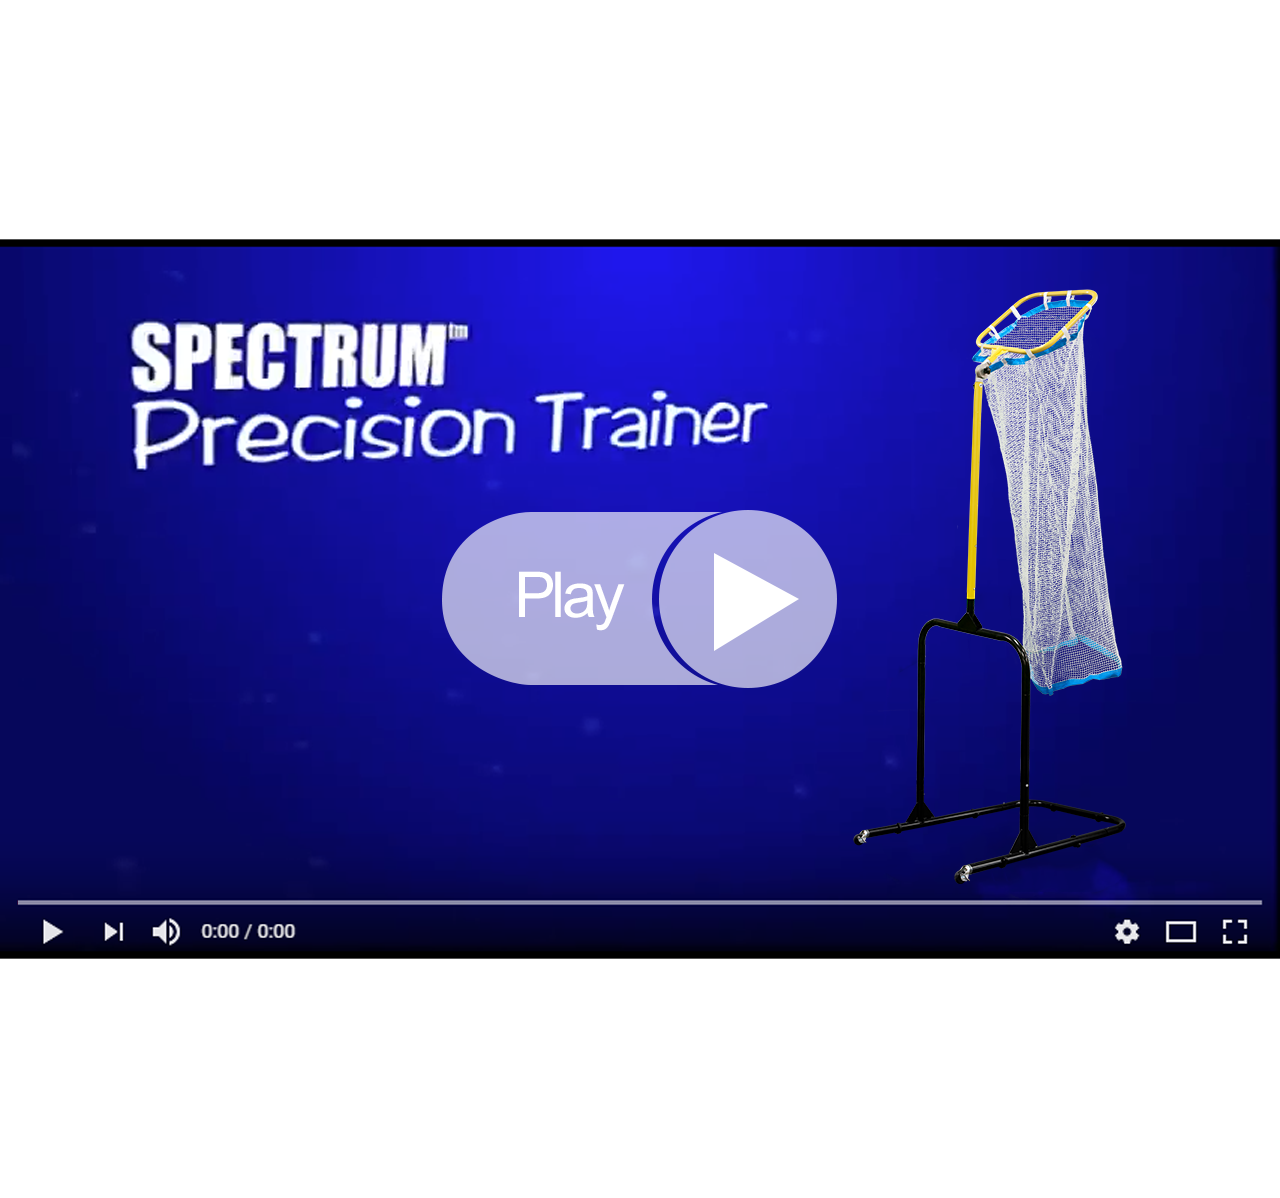 Park and Sports Spectrum Precision Trainer YouTube Video